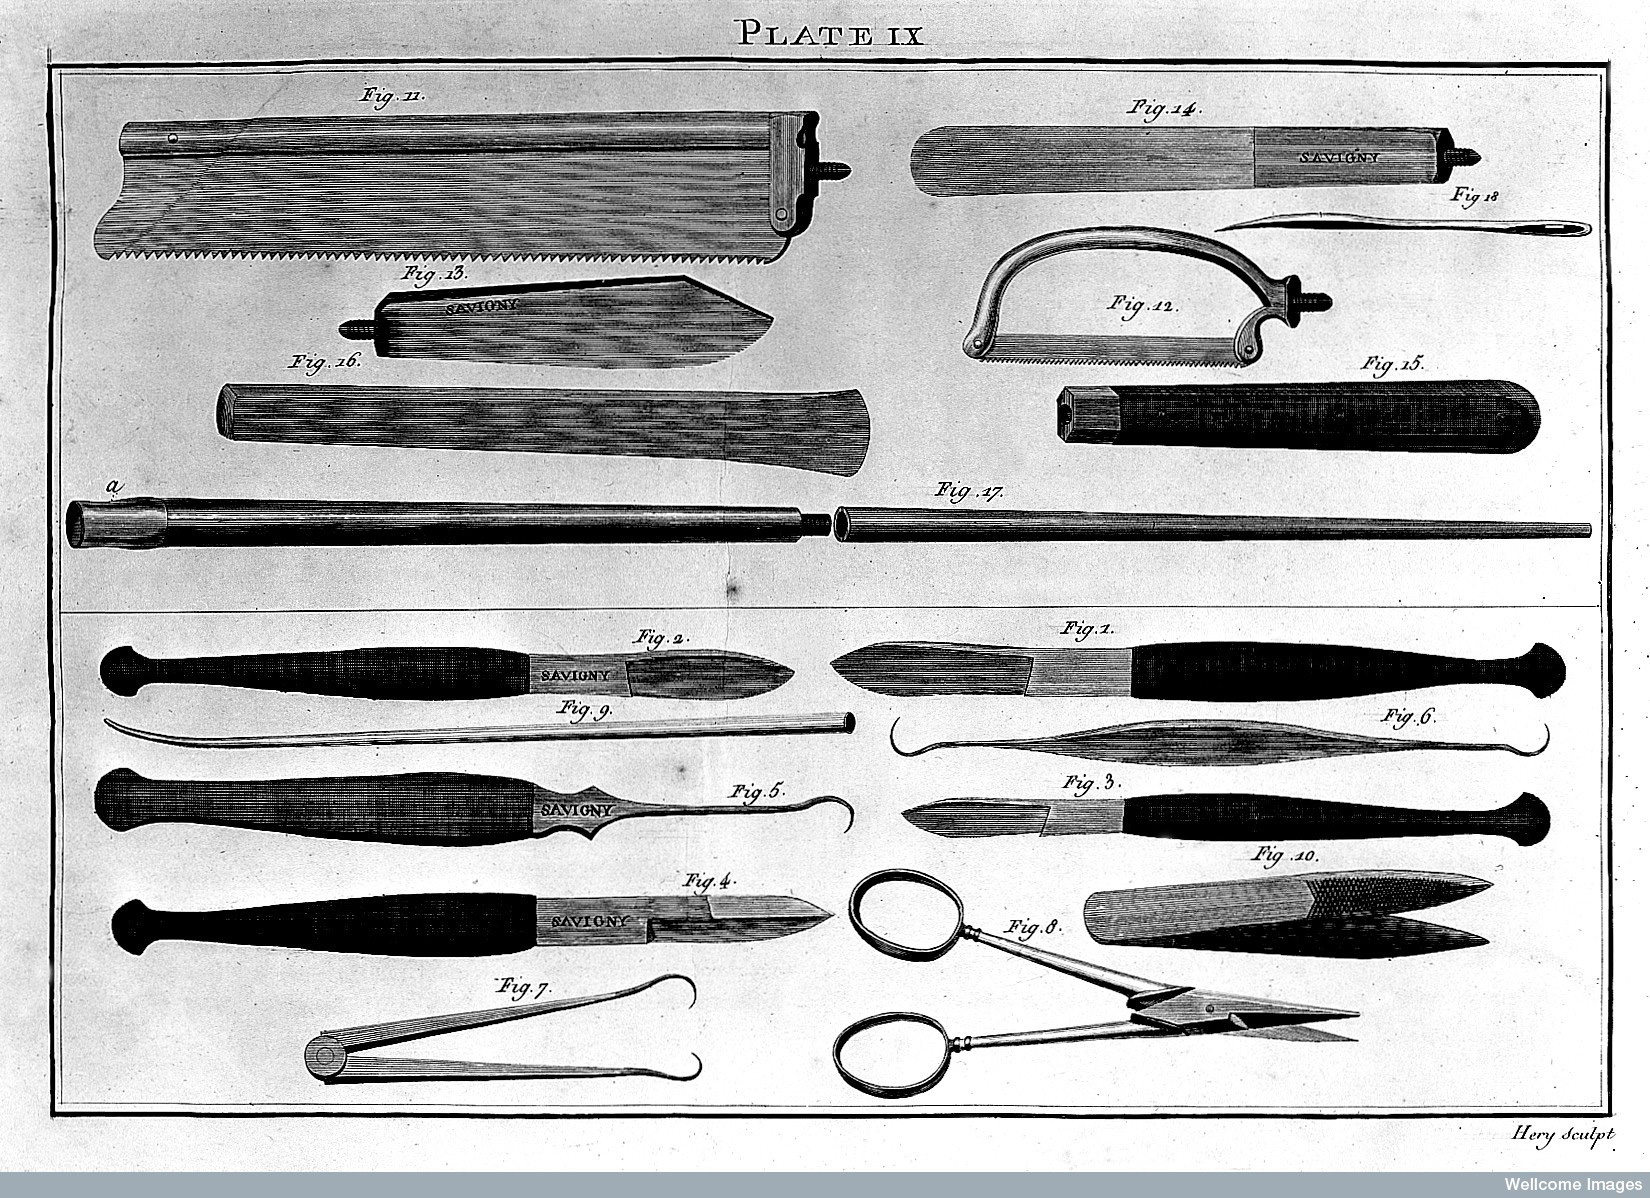 Instruments for use in anatomical dissection